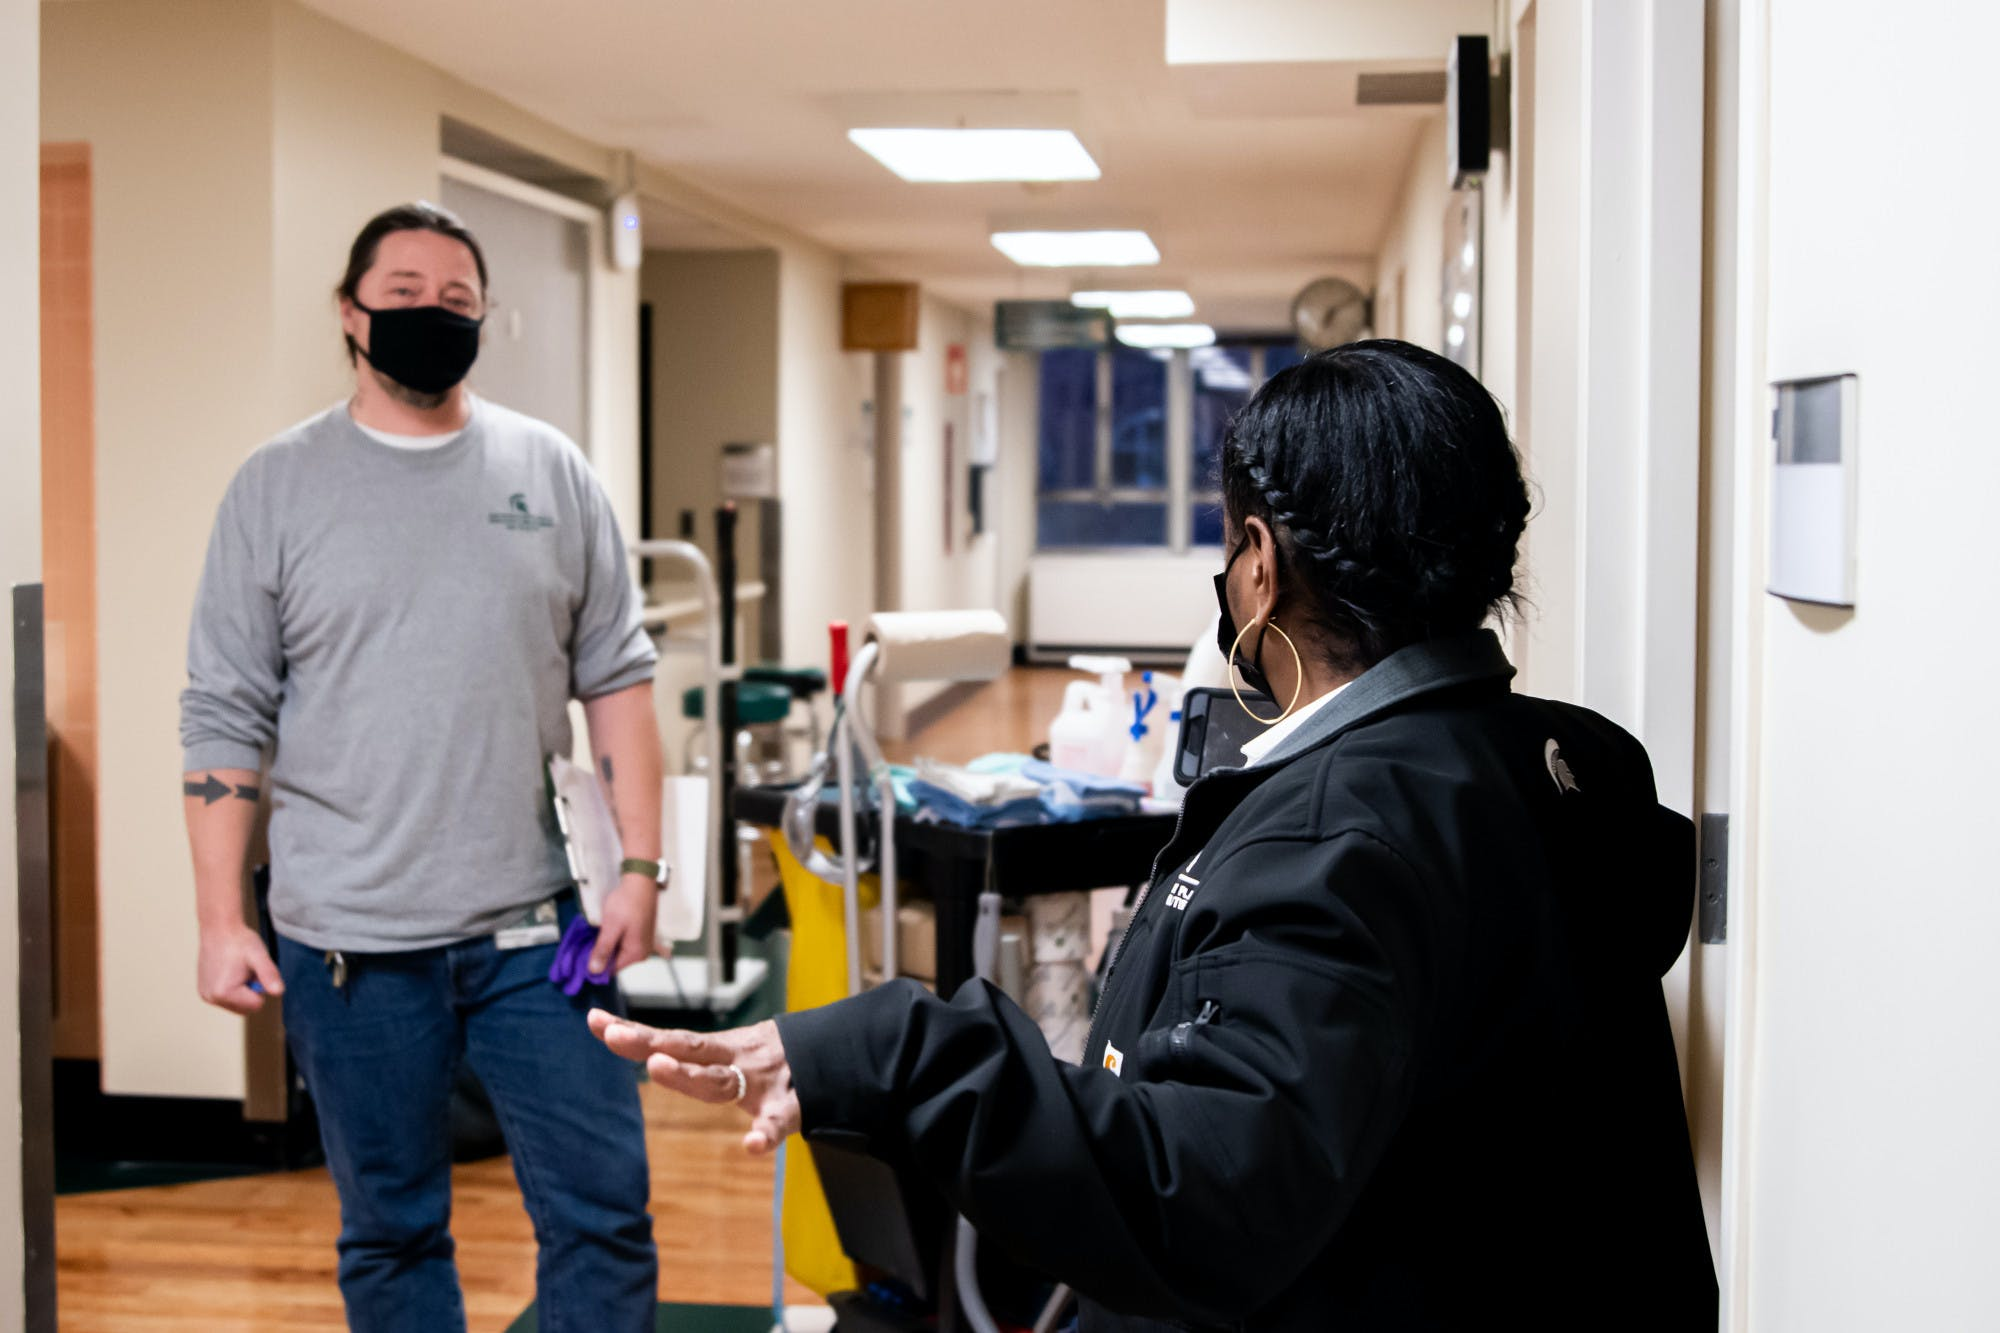 Two people wearing face masks talk to each other distanced in a hallway. Both wear clothing with the Michigan State Spartan logo on them and one person's face is not visible.